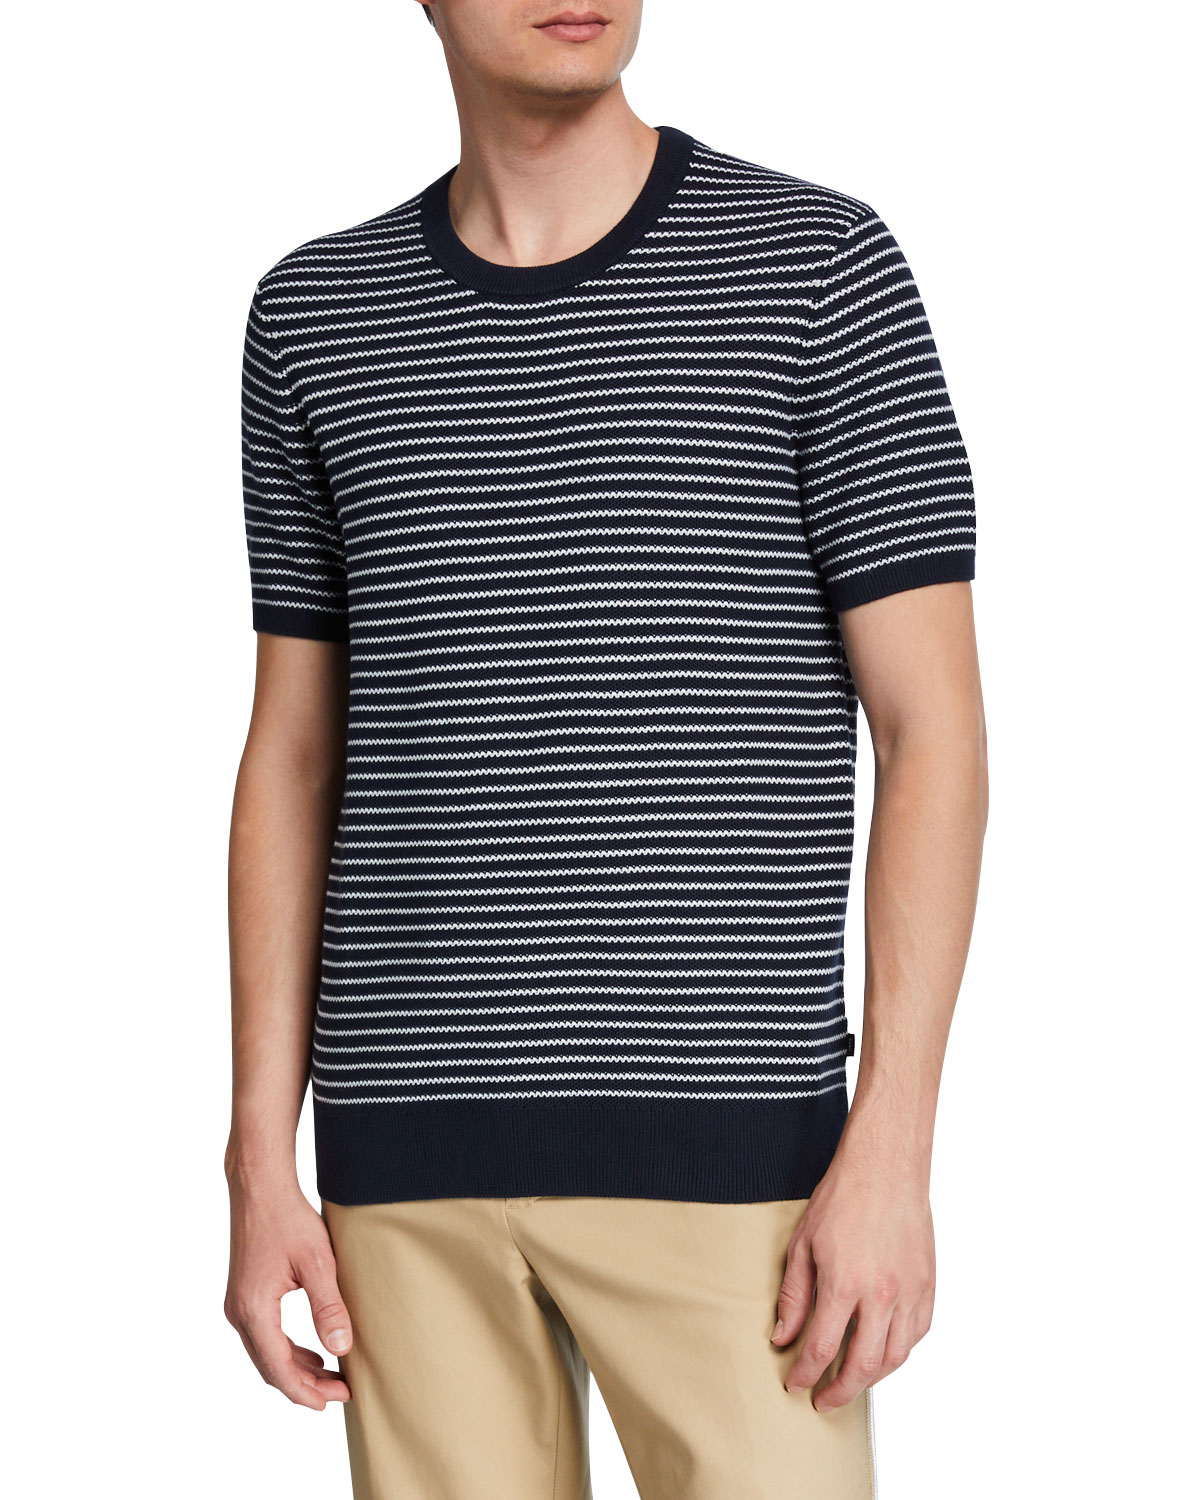 Michael Kors Men's Striped Short-Sleeve Luxe Cotton Sweater